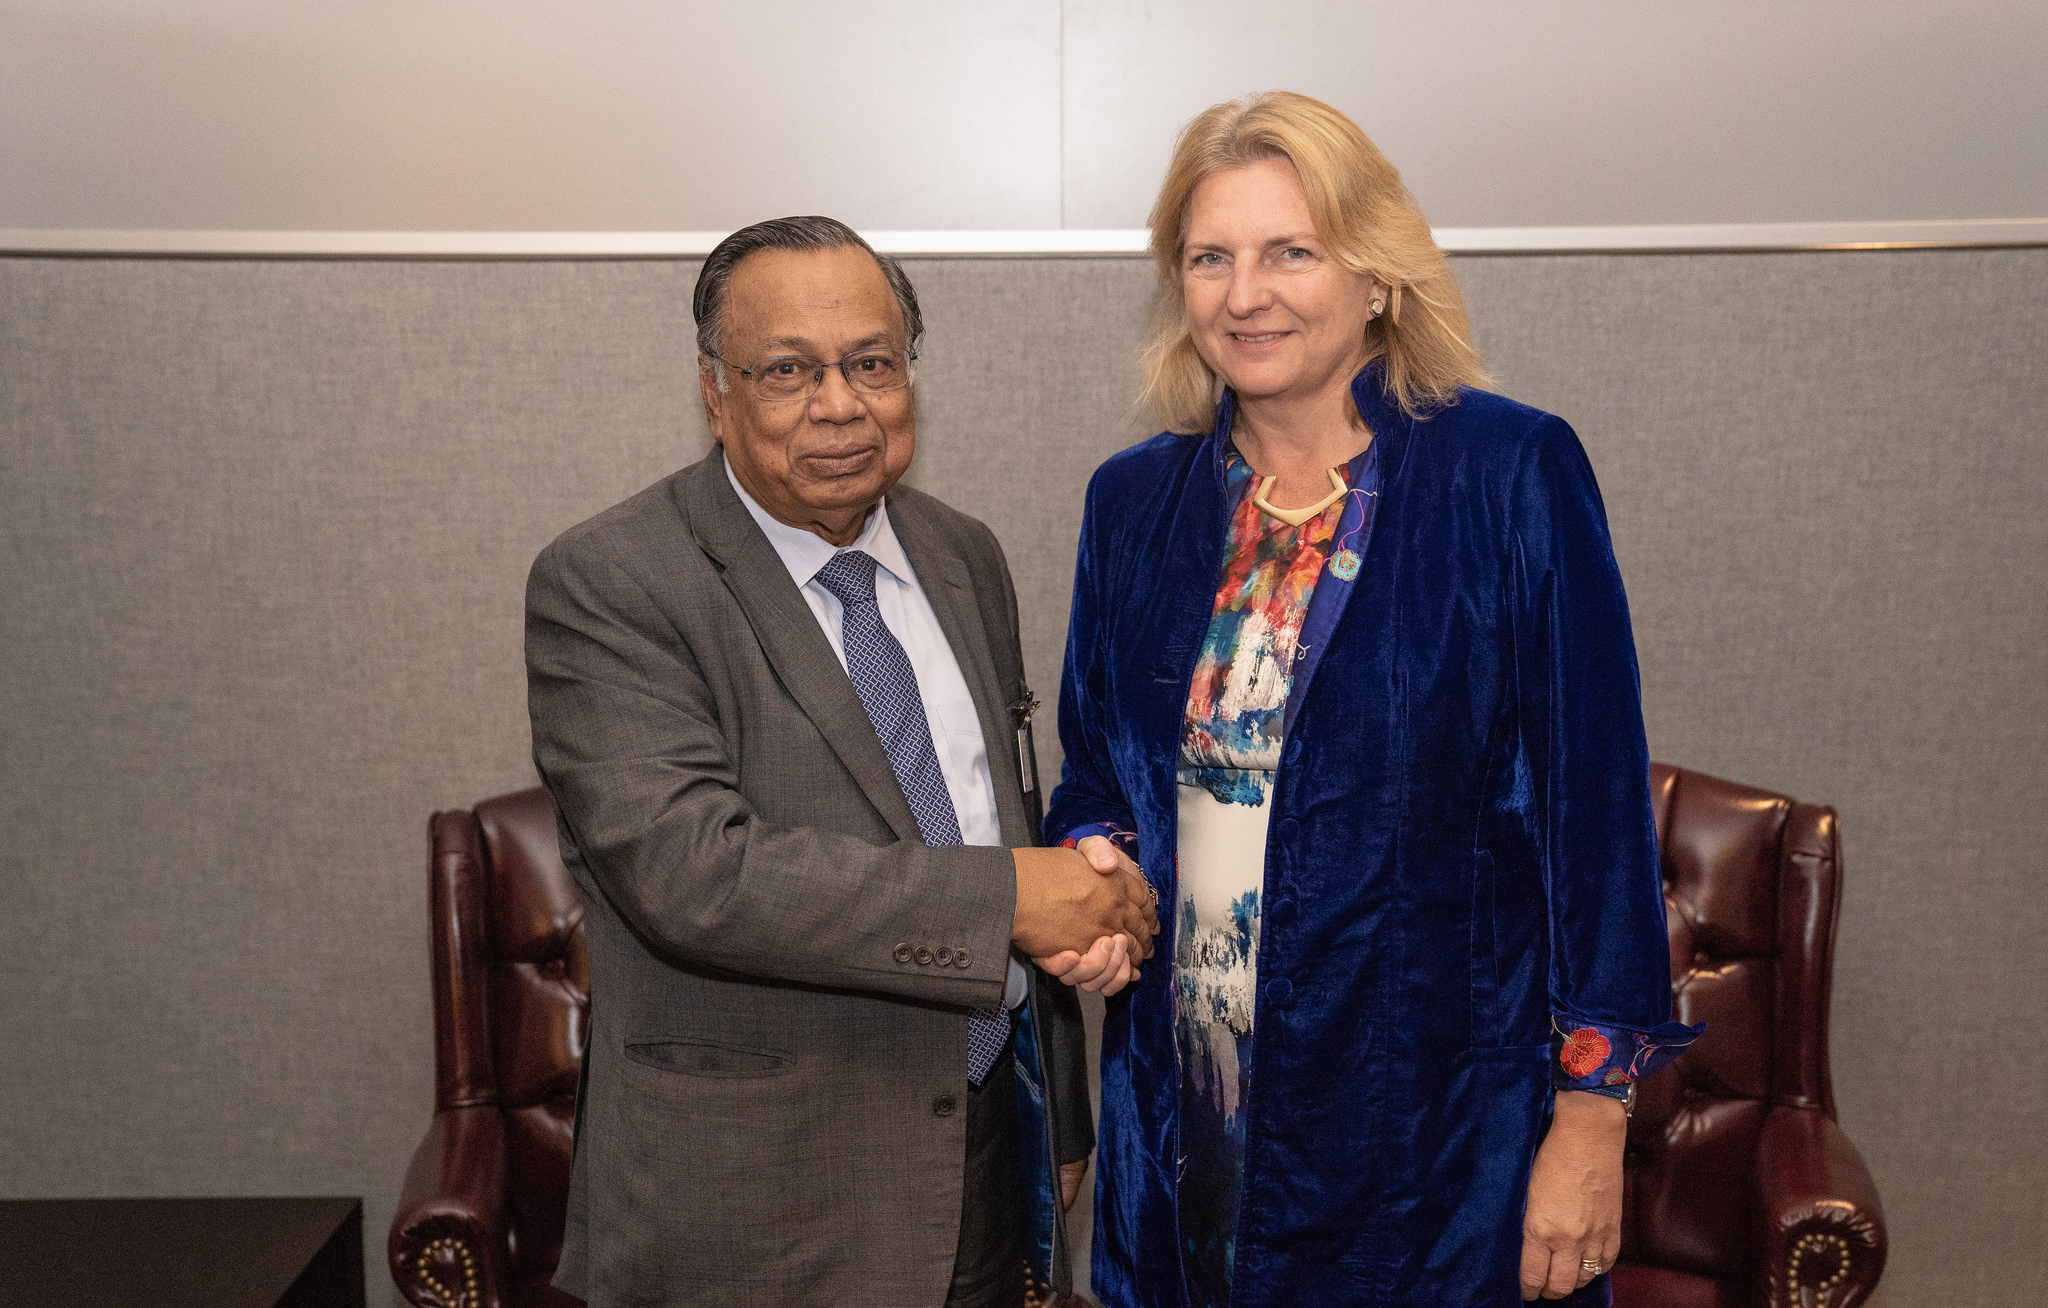 Foreign Minister Karin Kneissl in a bilateral meeting with her counterpart, Foreign Minister of Bangladesh, Abul Hassan Mahmood Ali (c) Austrian Ministry of Foreign Affairs